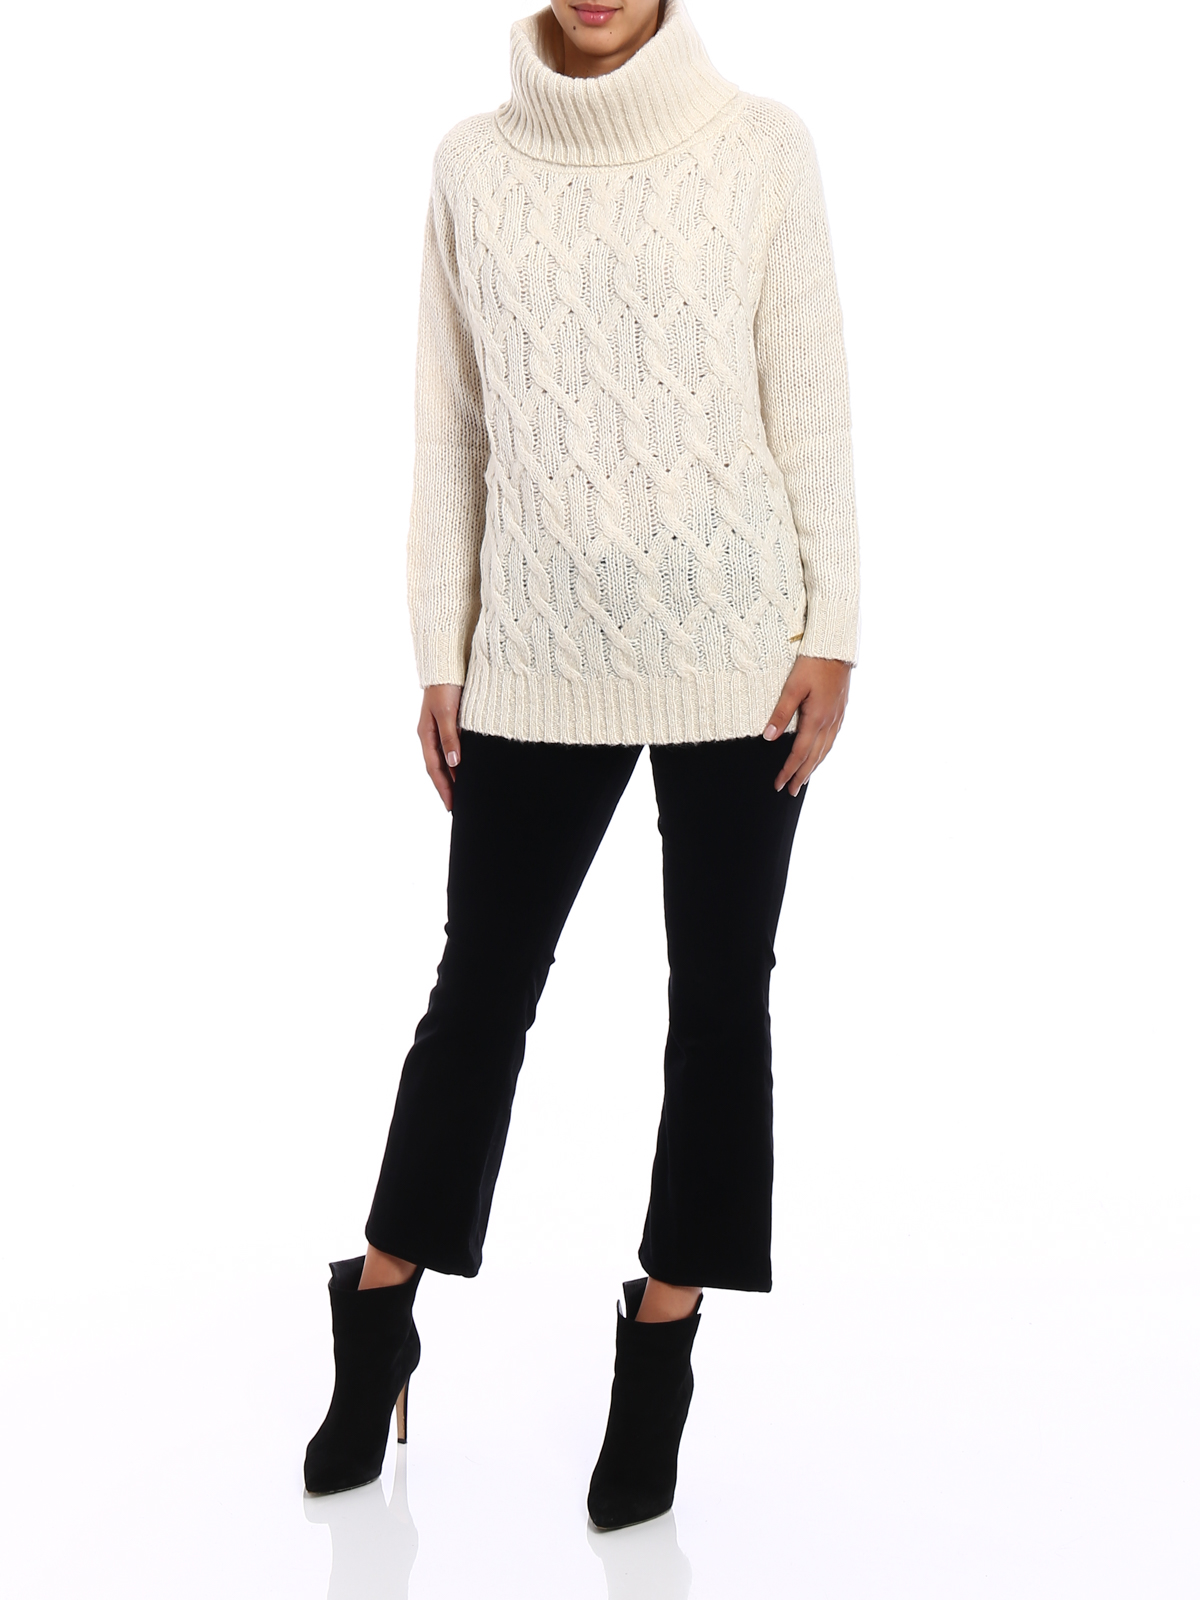 45c876aba13 Woolrich - Alpaca blend twist knit turtleneck - Turtlenecks   Polo ...